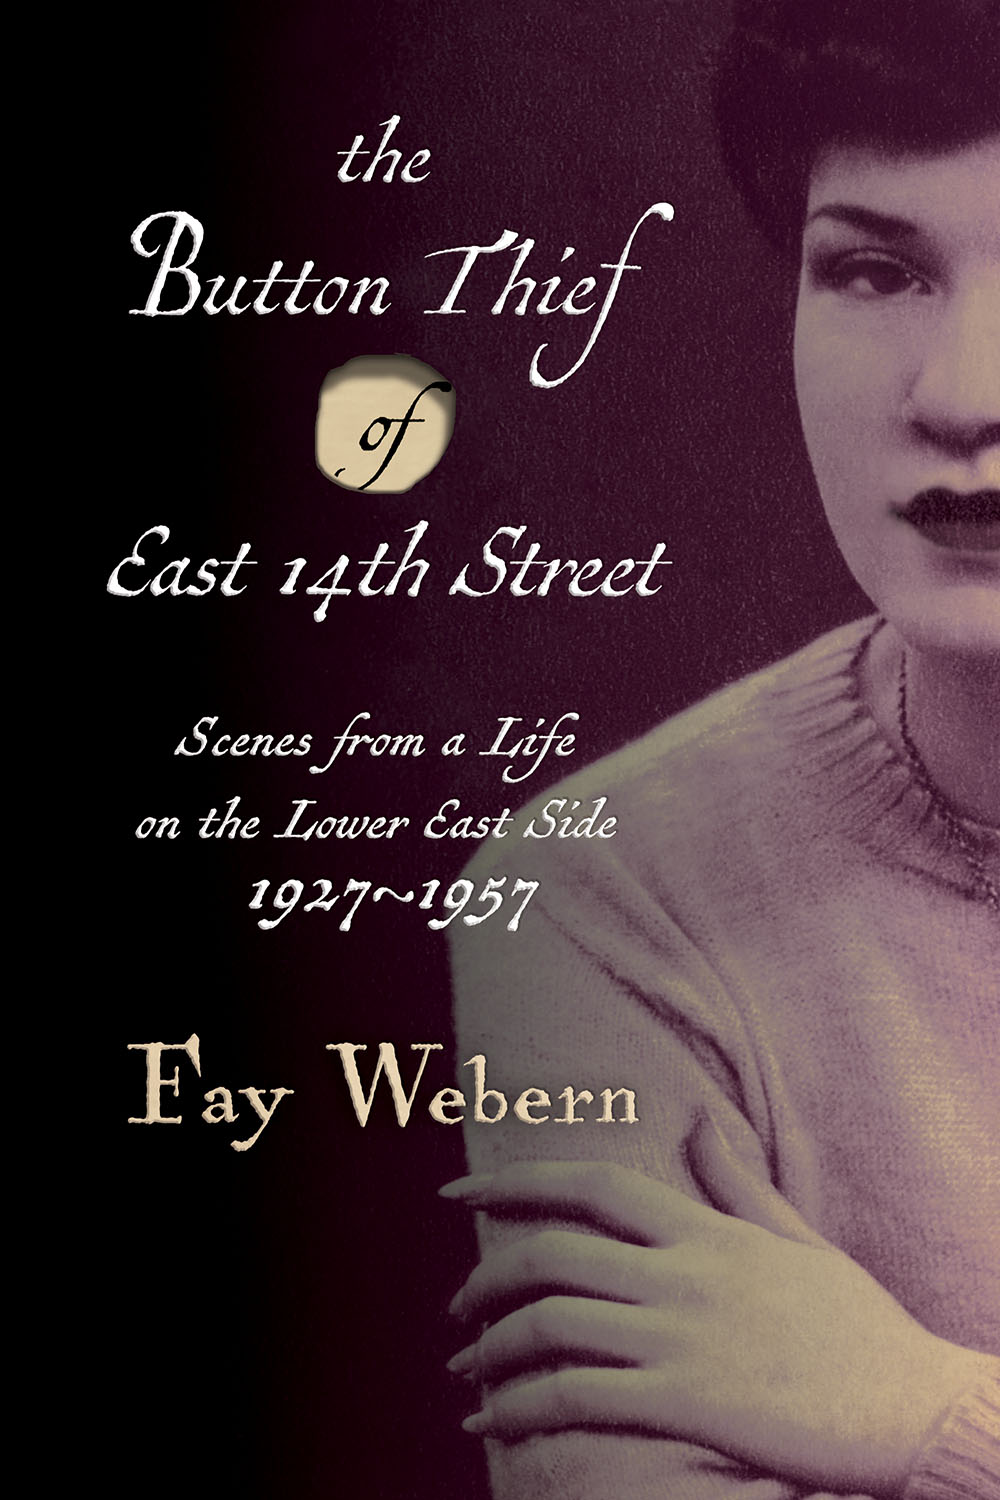 The Button Thief of East 14th Street: Scenes from a Life on the Lower East Side 1927-1957